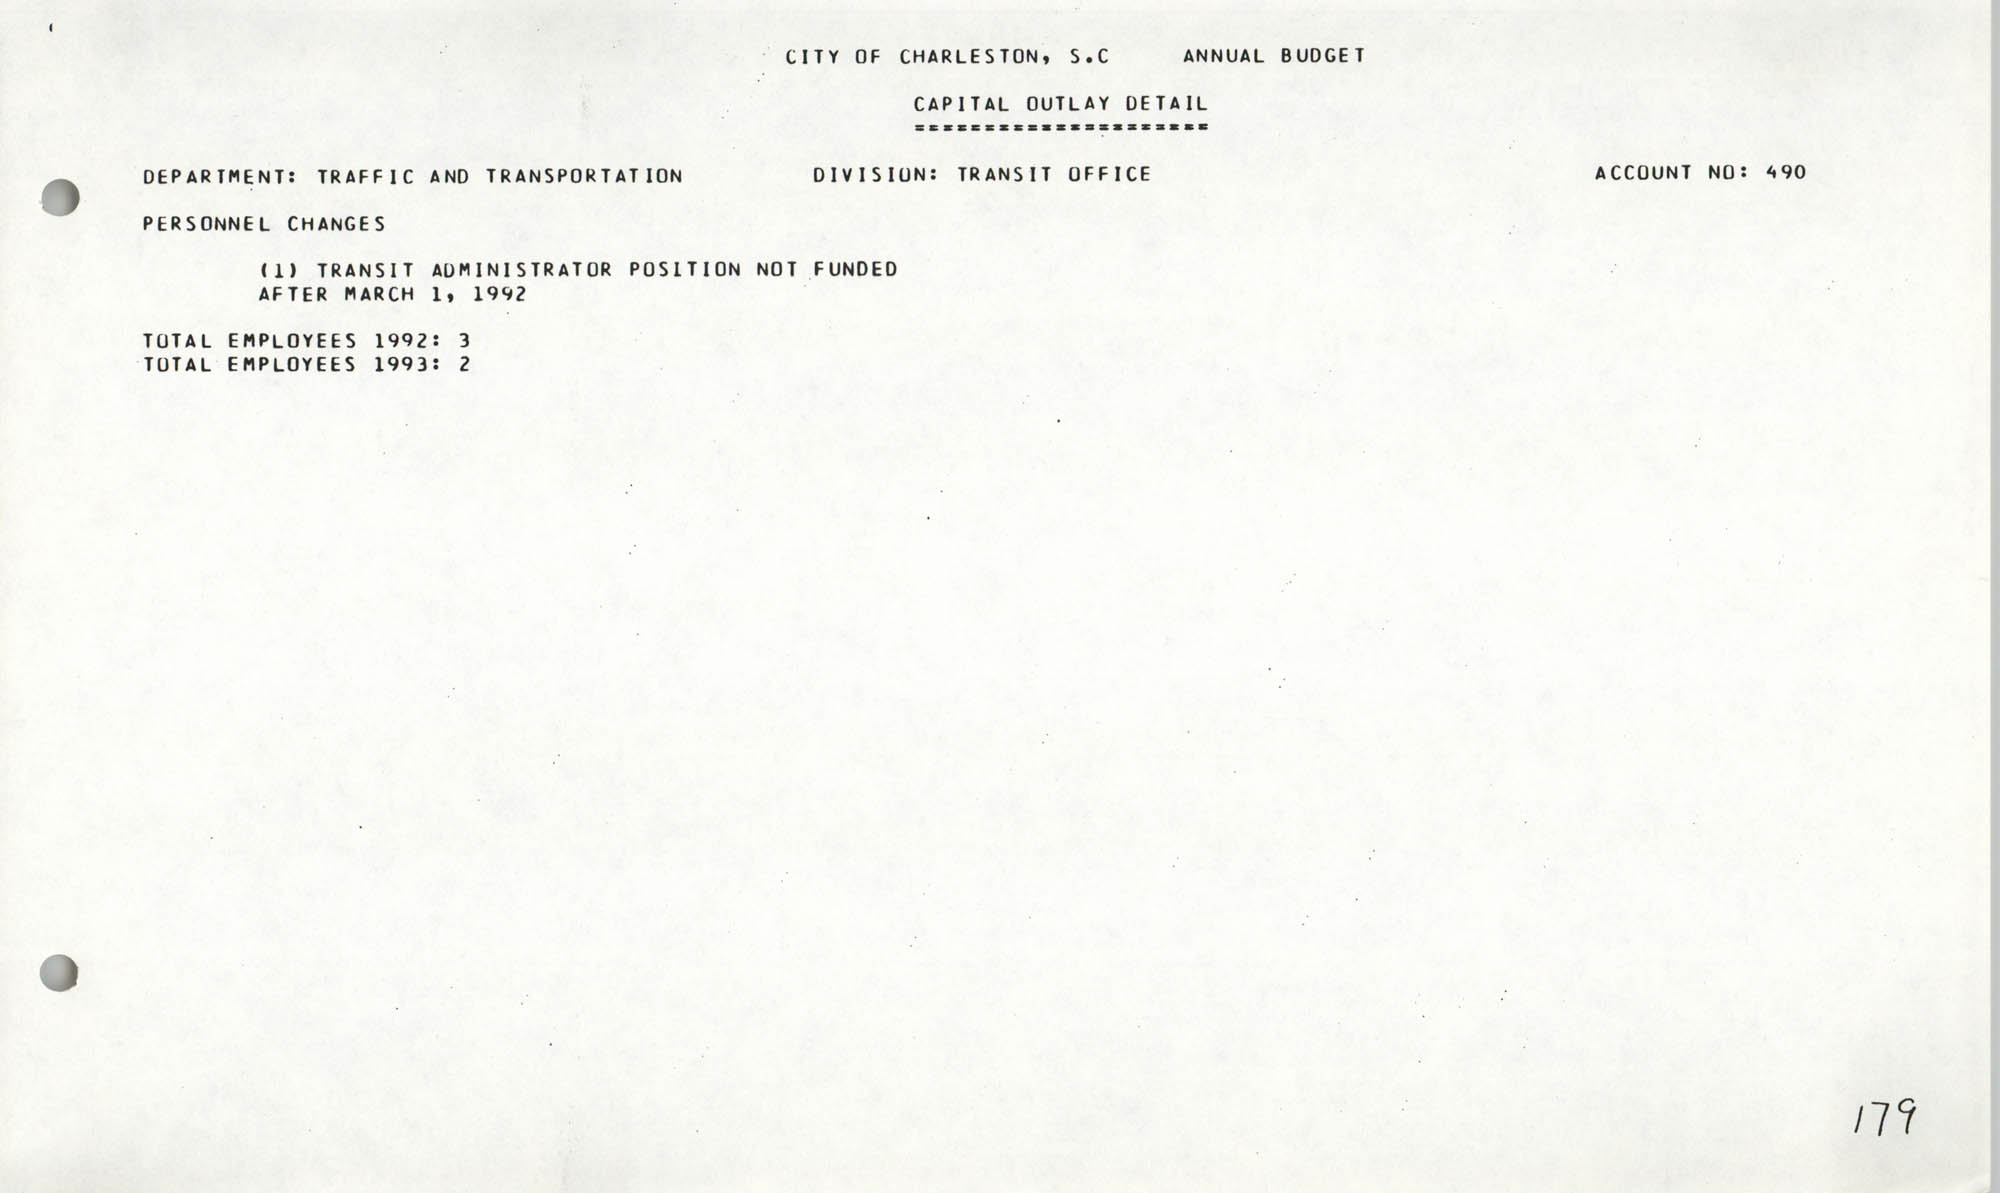 The City Council of Charleston, South Carolina, 1993 Budget, Page 179